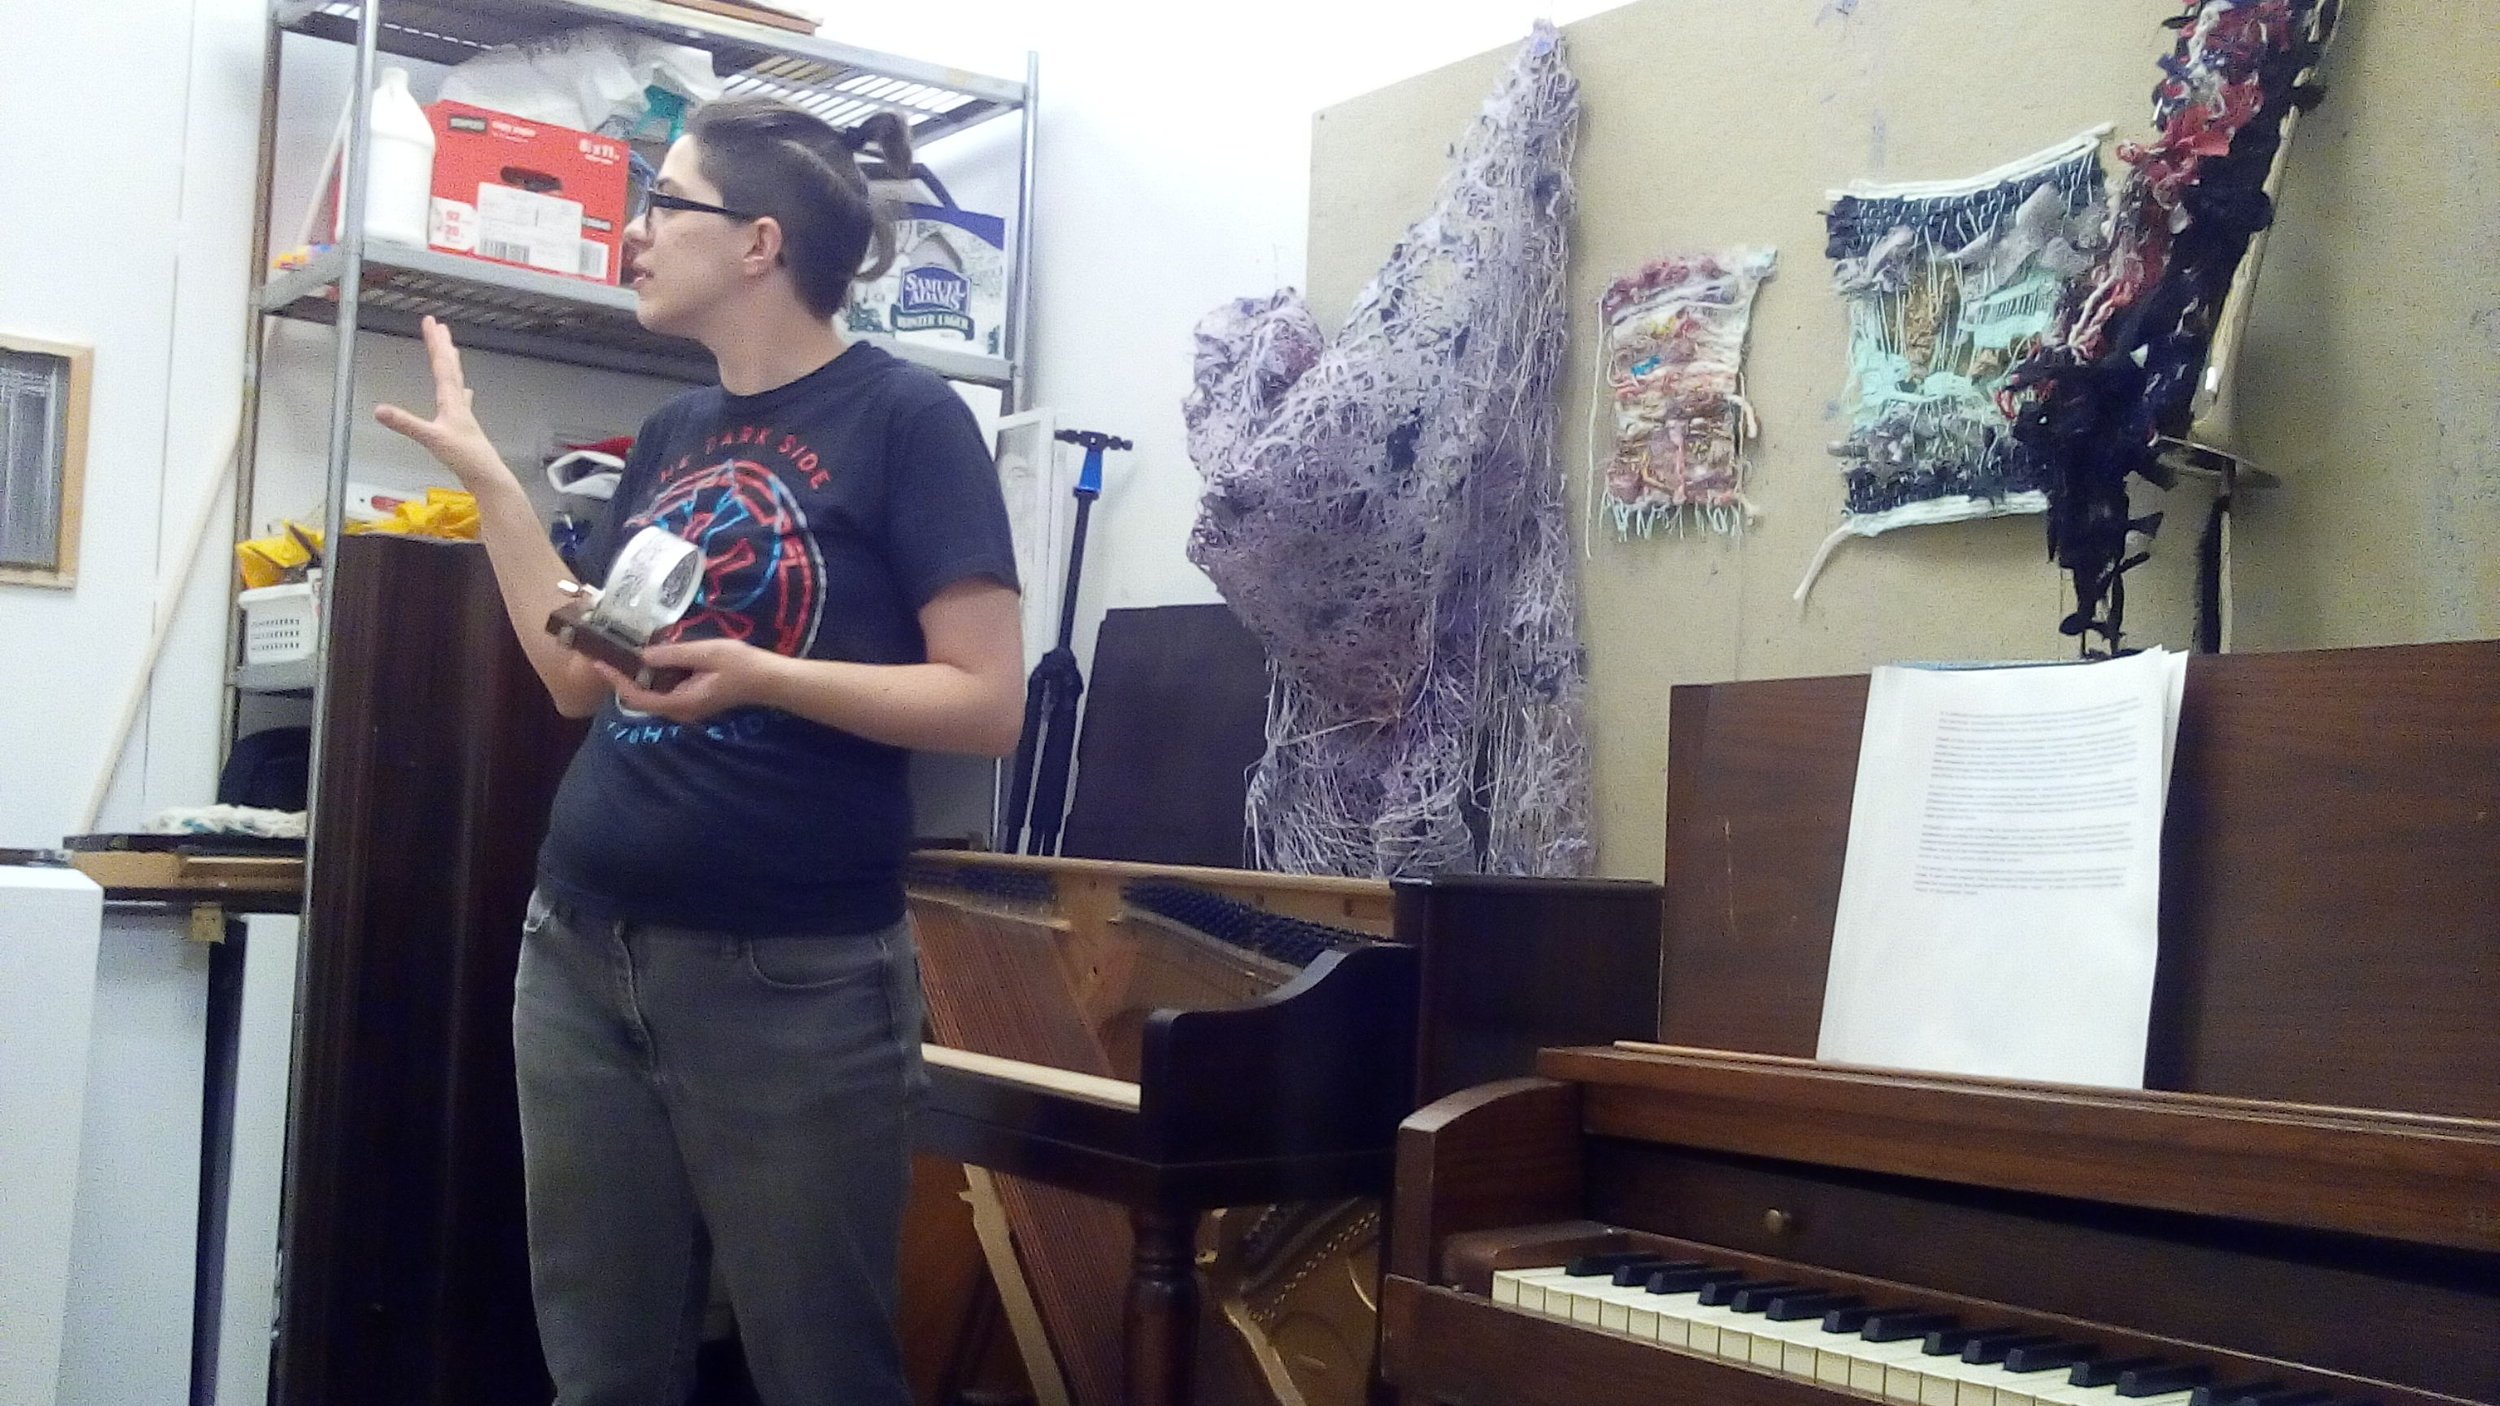 Image of Erin King in Her studio.